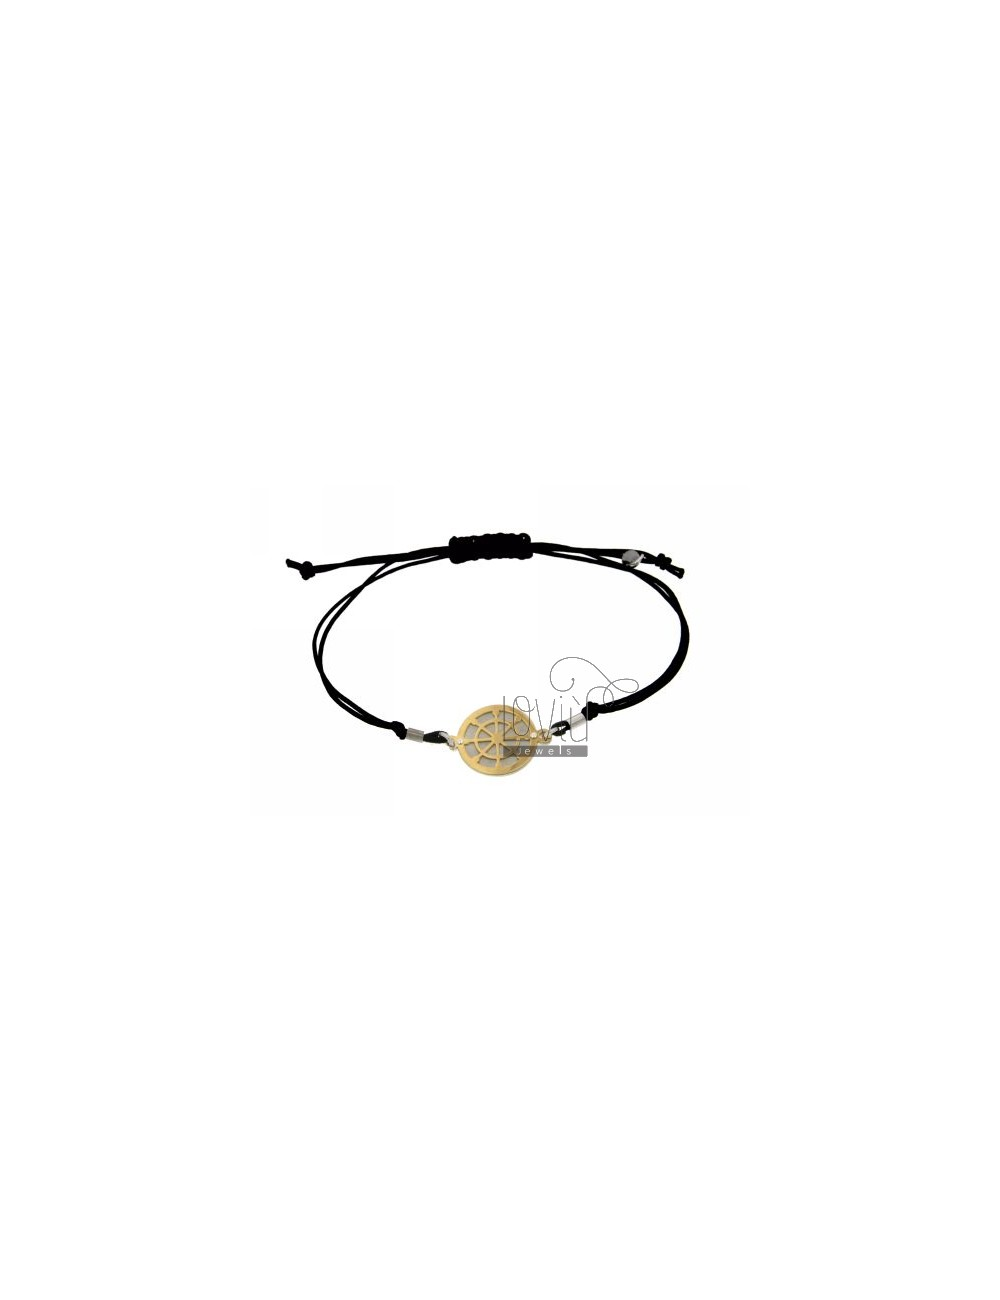 STRING BRACELET AND NECKLACE WITH ROUND GOLD PLATED SILVER 925 RUDDER